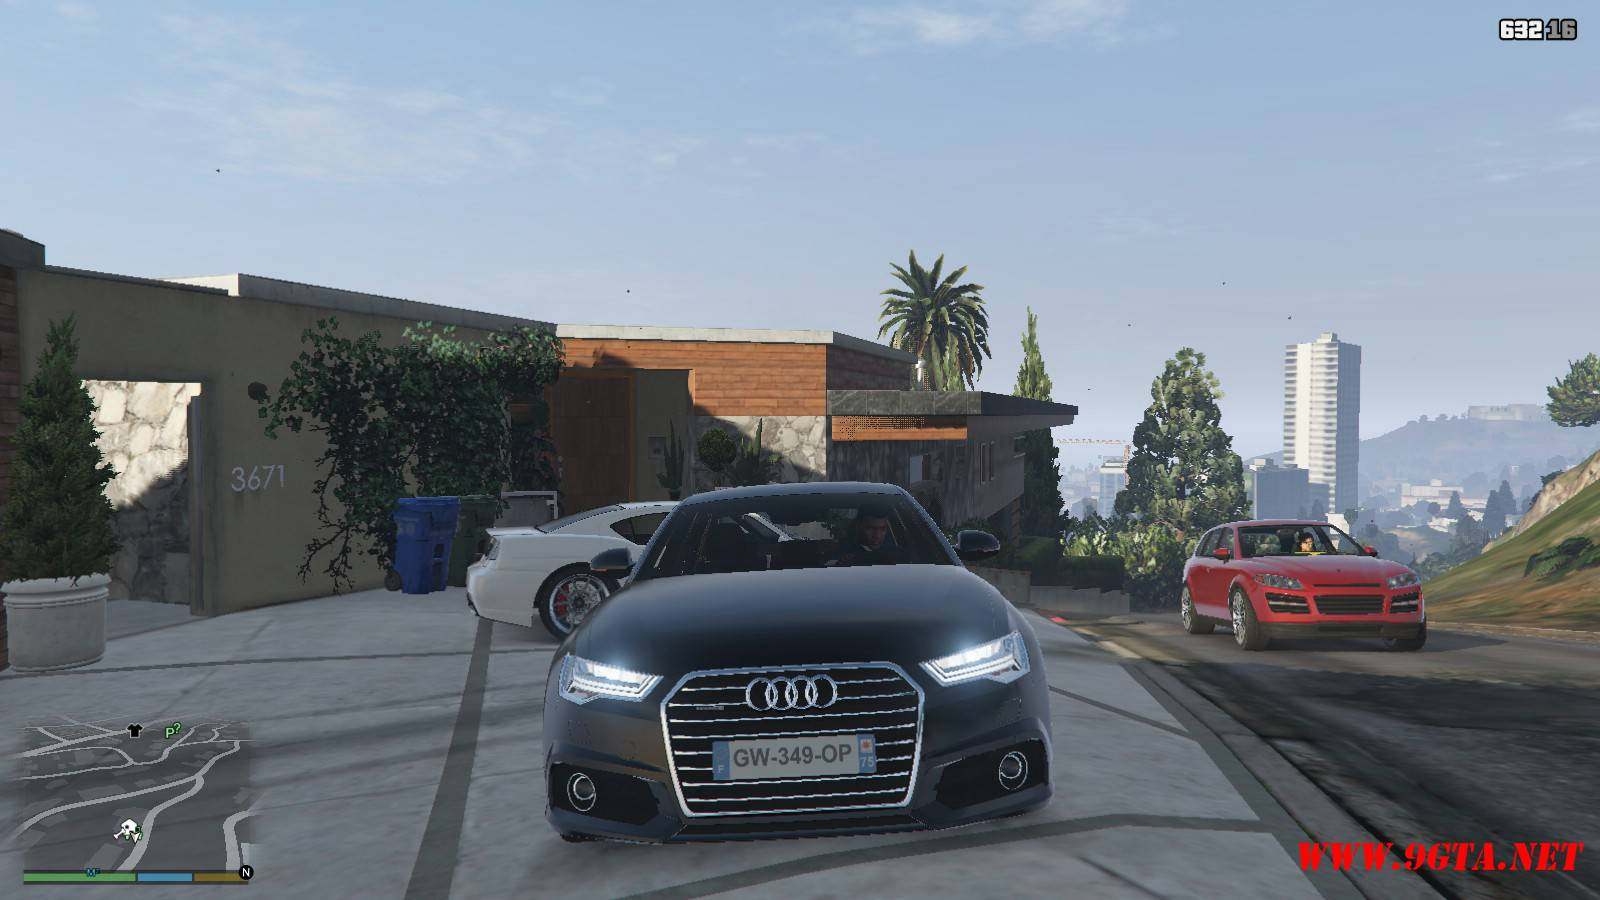 Audi A6 Mod For GTA5 (11)